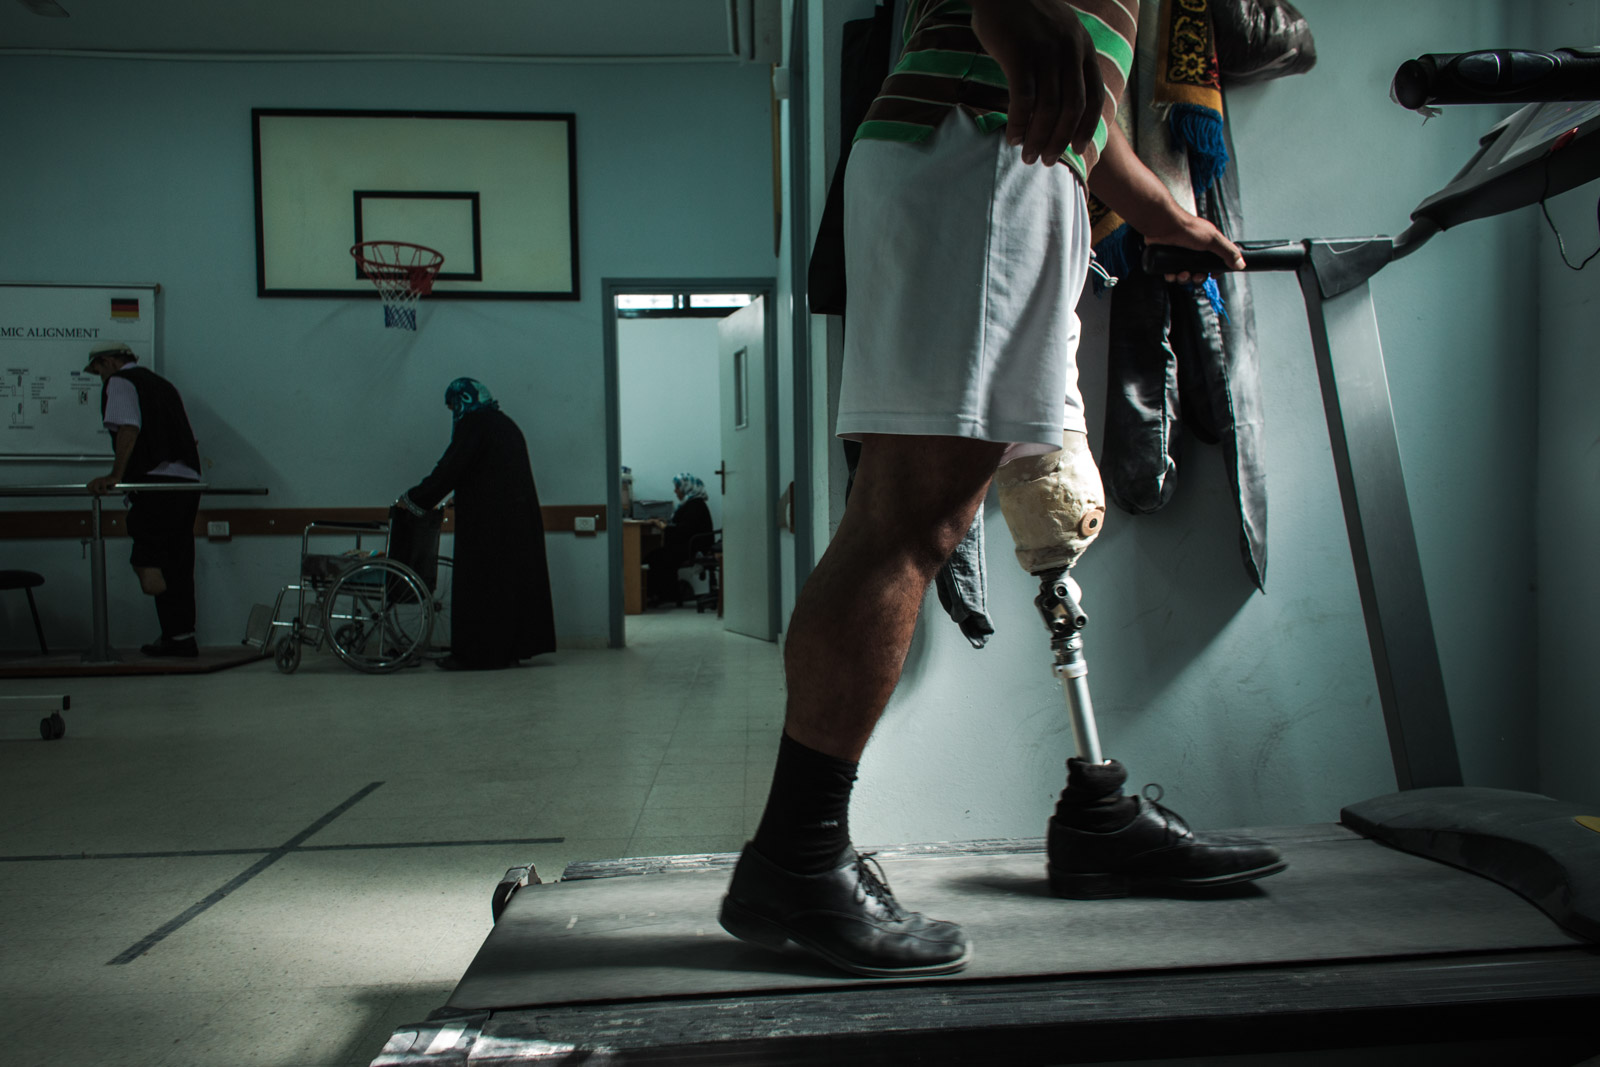 Gaza City, Gaza - November 6, 2012: A patient practices walking with a prosthesis in Gaza Artificial Limbs and Polio Centre. Program of dynamic rehabilitation includes lessons of proper walk and teaches patients how to adjust prosthesis for patient's needs.